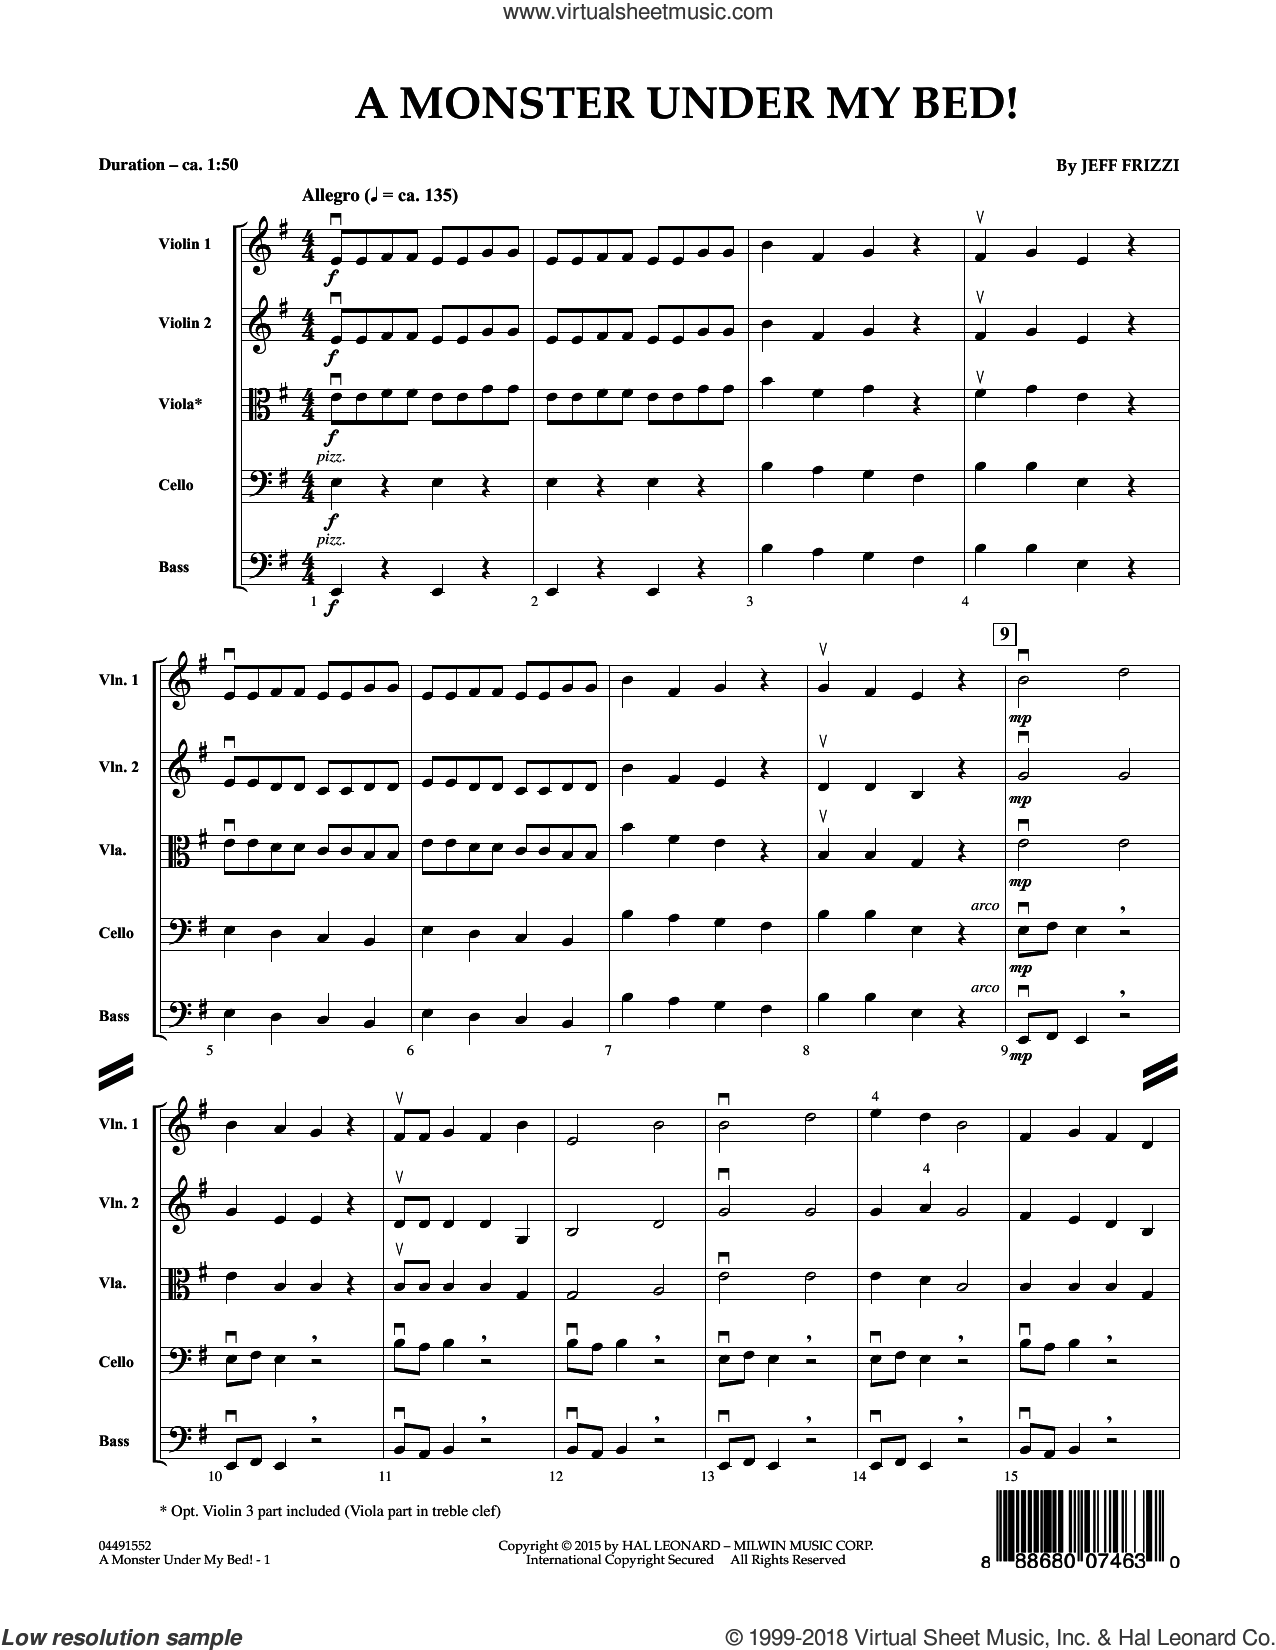 A Monster Under My Bed! (COMPLETE) sheet music for orchestra by Jeff Frizzi, intermediate skill level